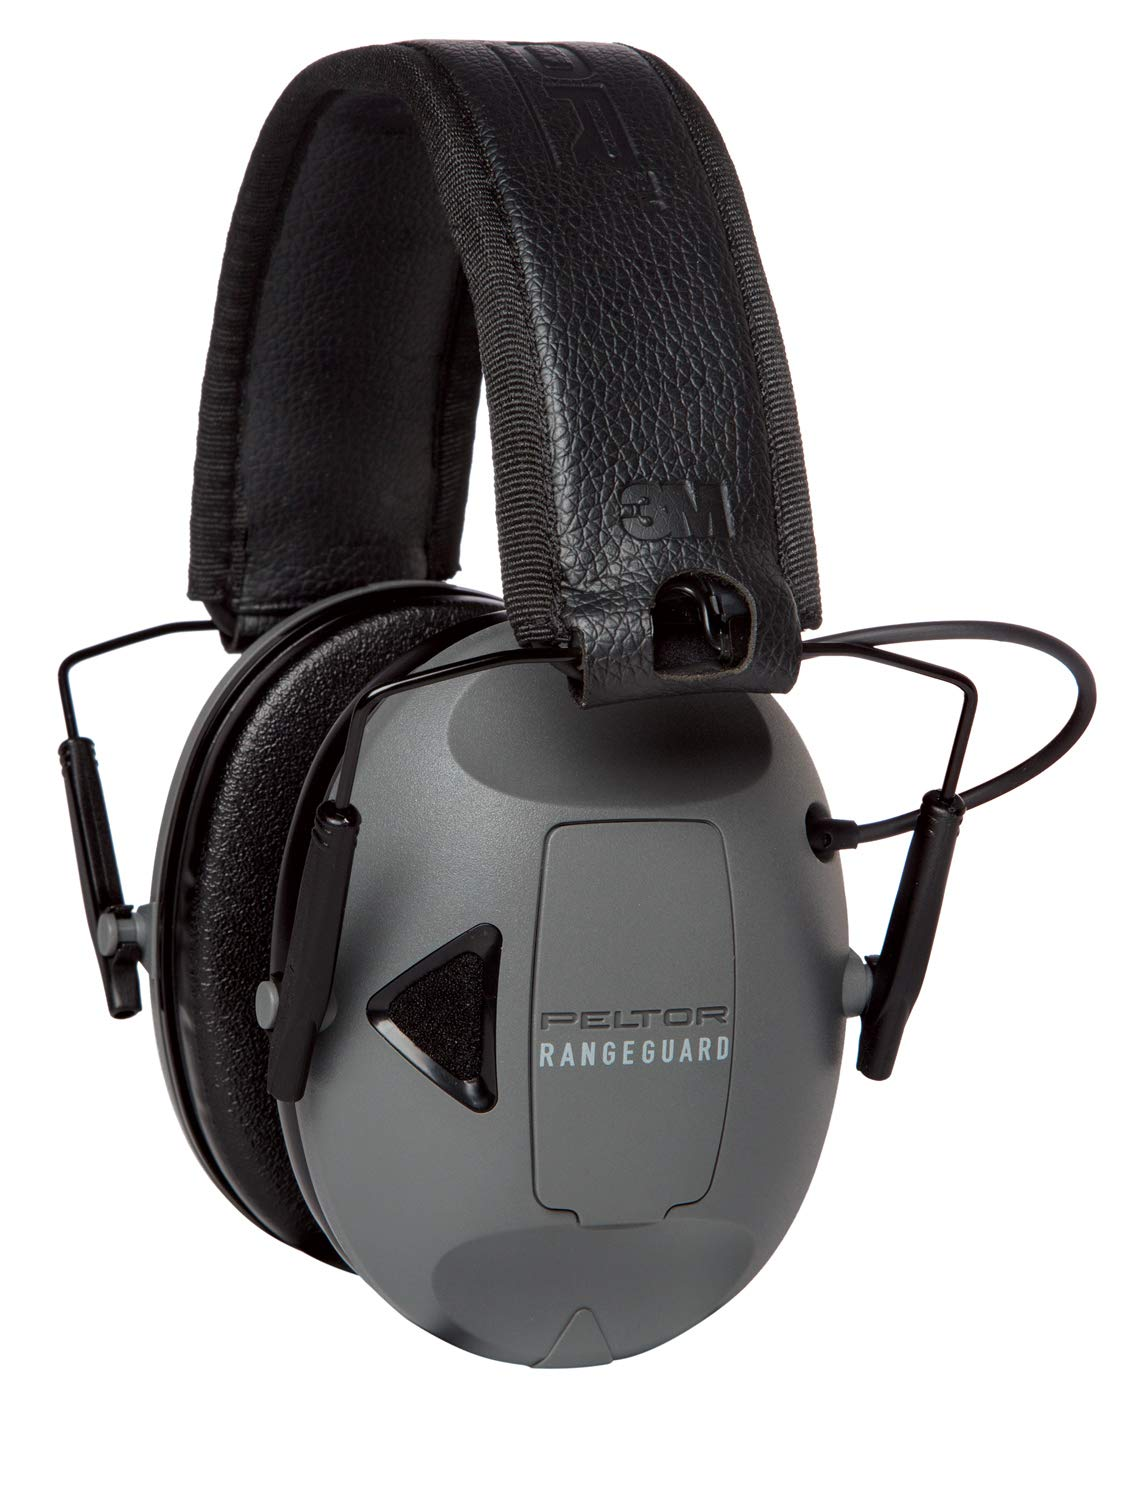 Peltor Sport RangeGuard  RG-OTH-4 Electronic Hearing Protector, Ear Protection, NRR 21 dB, Ideal for Shooting and Hunting by Peltor